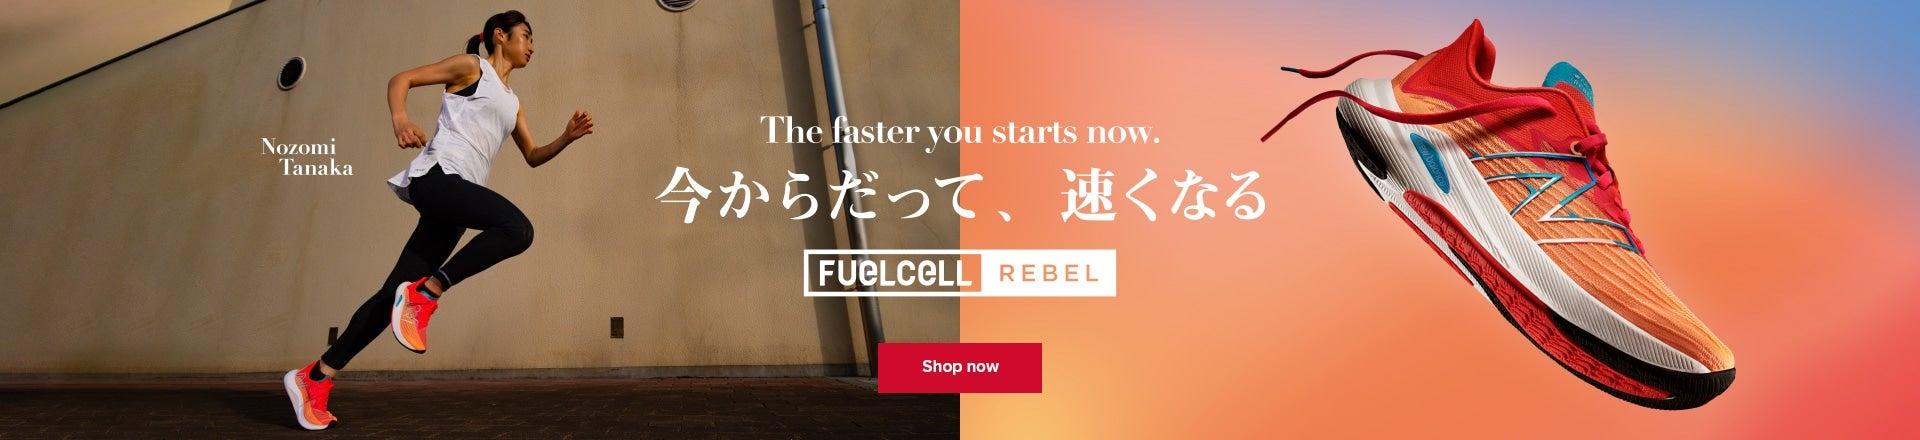 FuelCell REBEL